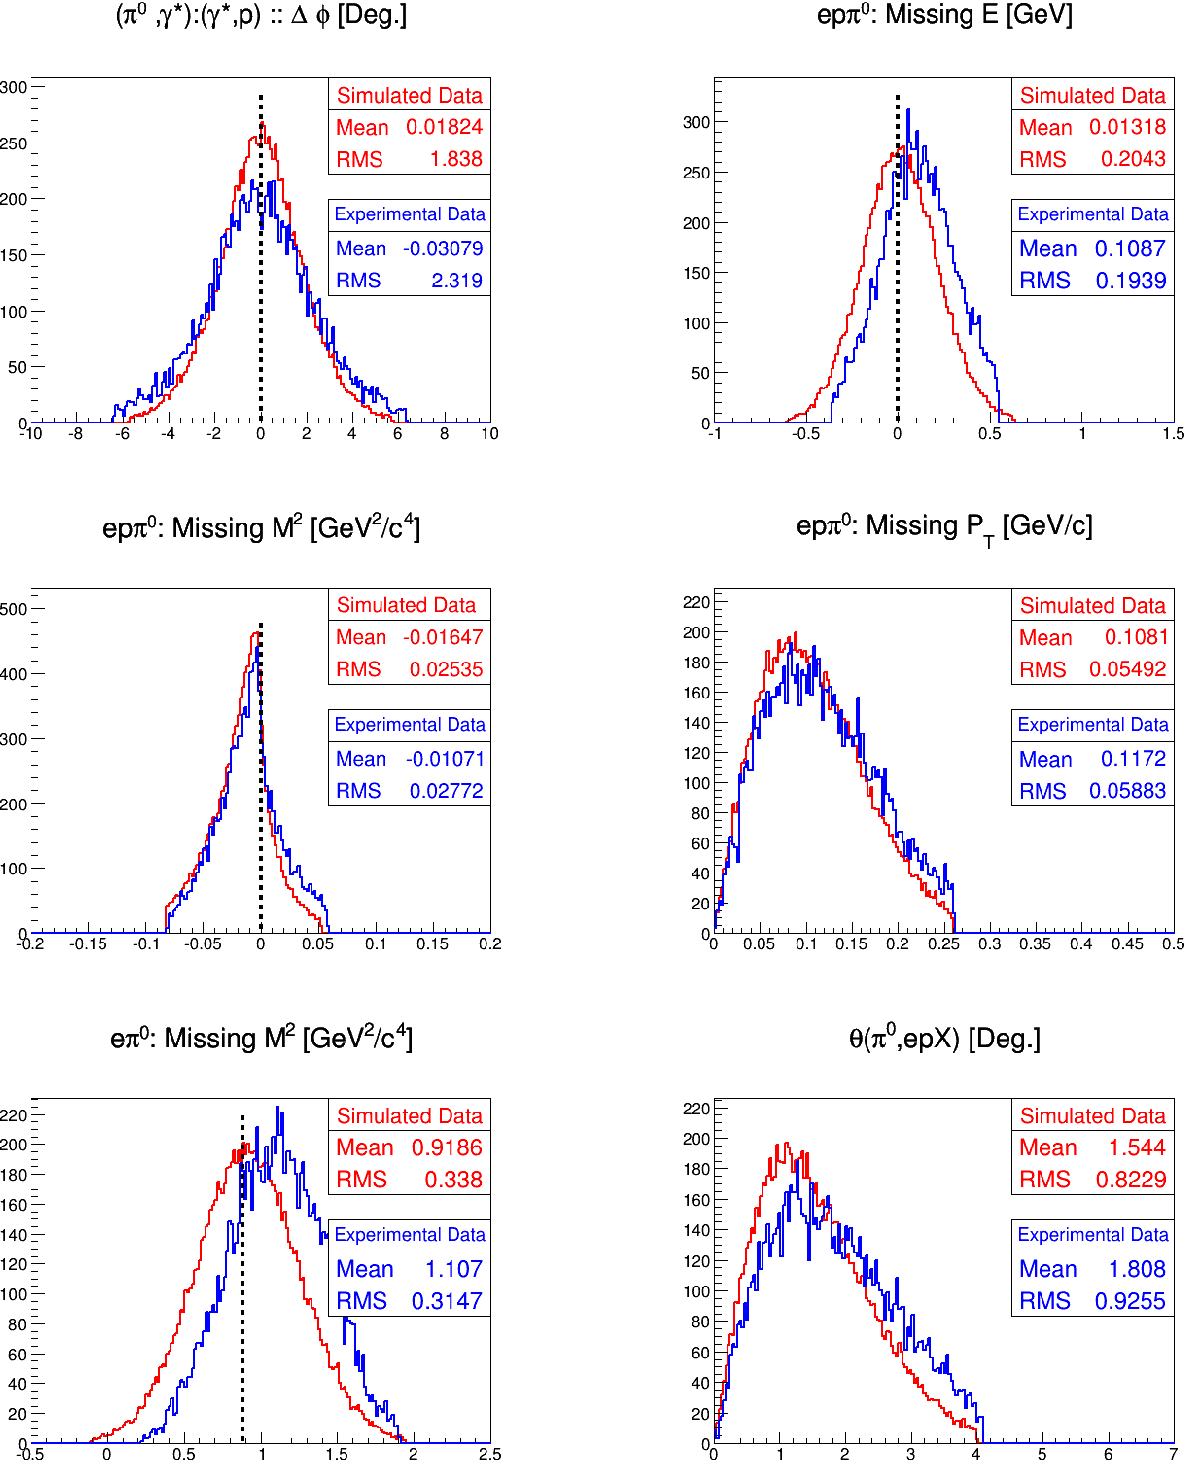 Figure D.6: Comparison between the simulated and experimental epπ0 DVCS events as a function of the variables used for the exclusivity cuts. The simulated distributions are normalized with respect to the experimental ones. The vertical black lines indicate the theoretically expected values.